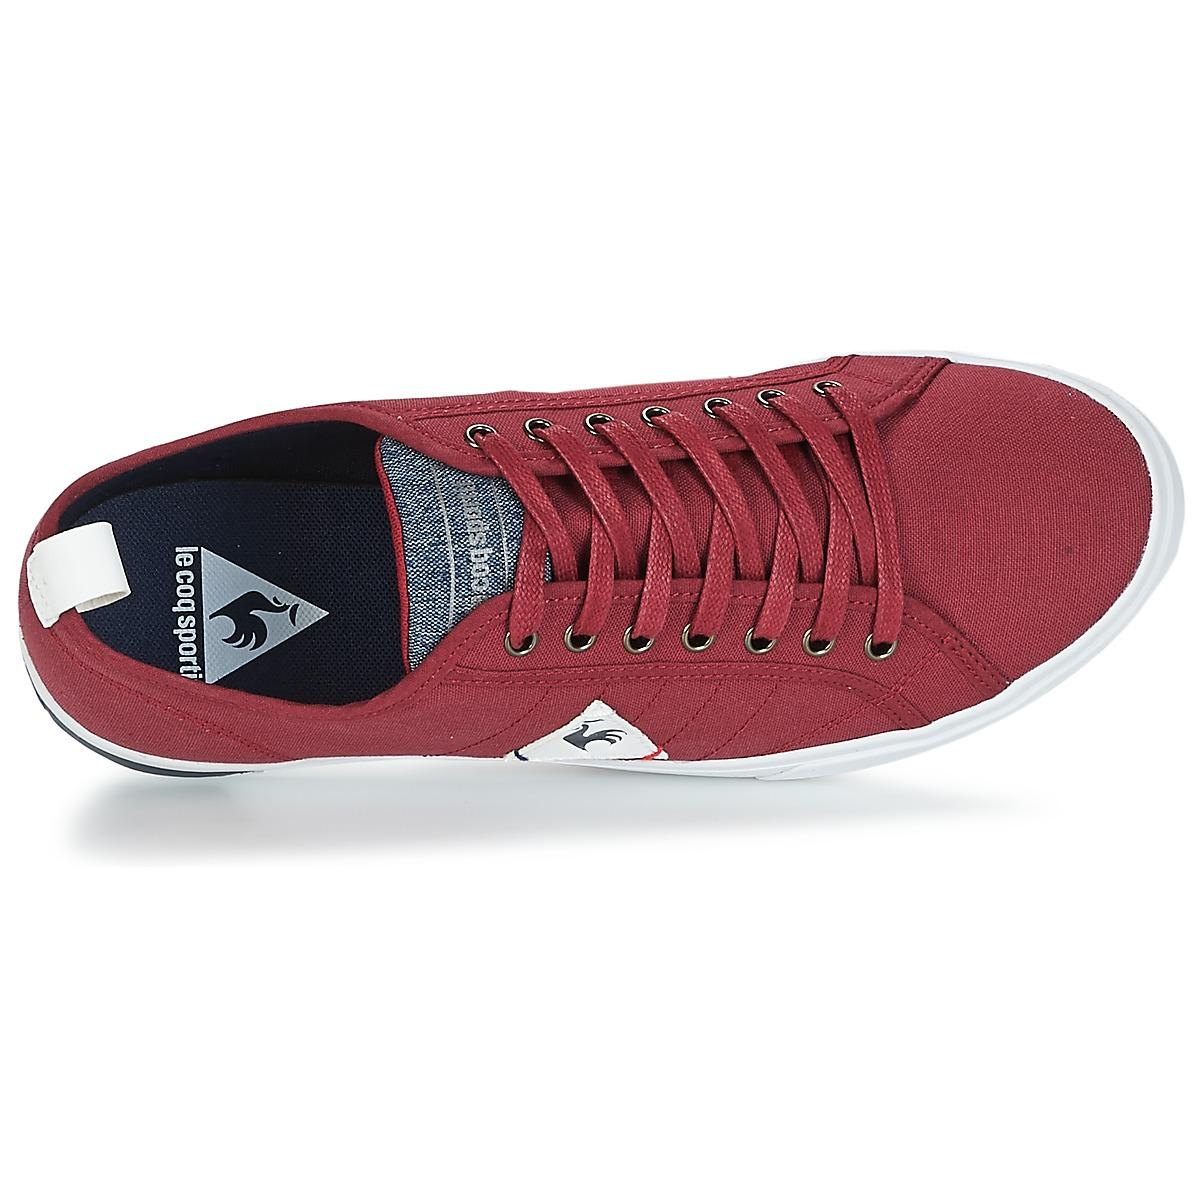 Le Coq Sportif Ares Cvs Shoes (trainers) in Red for Men